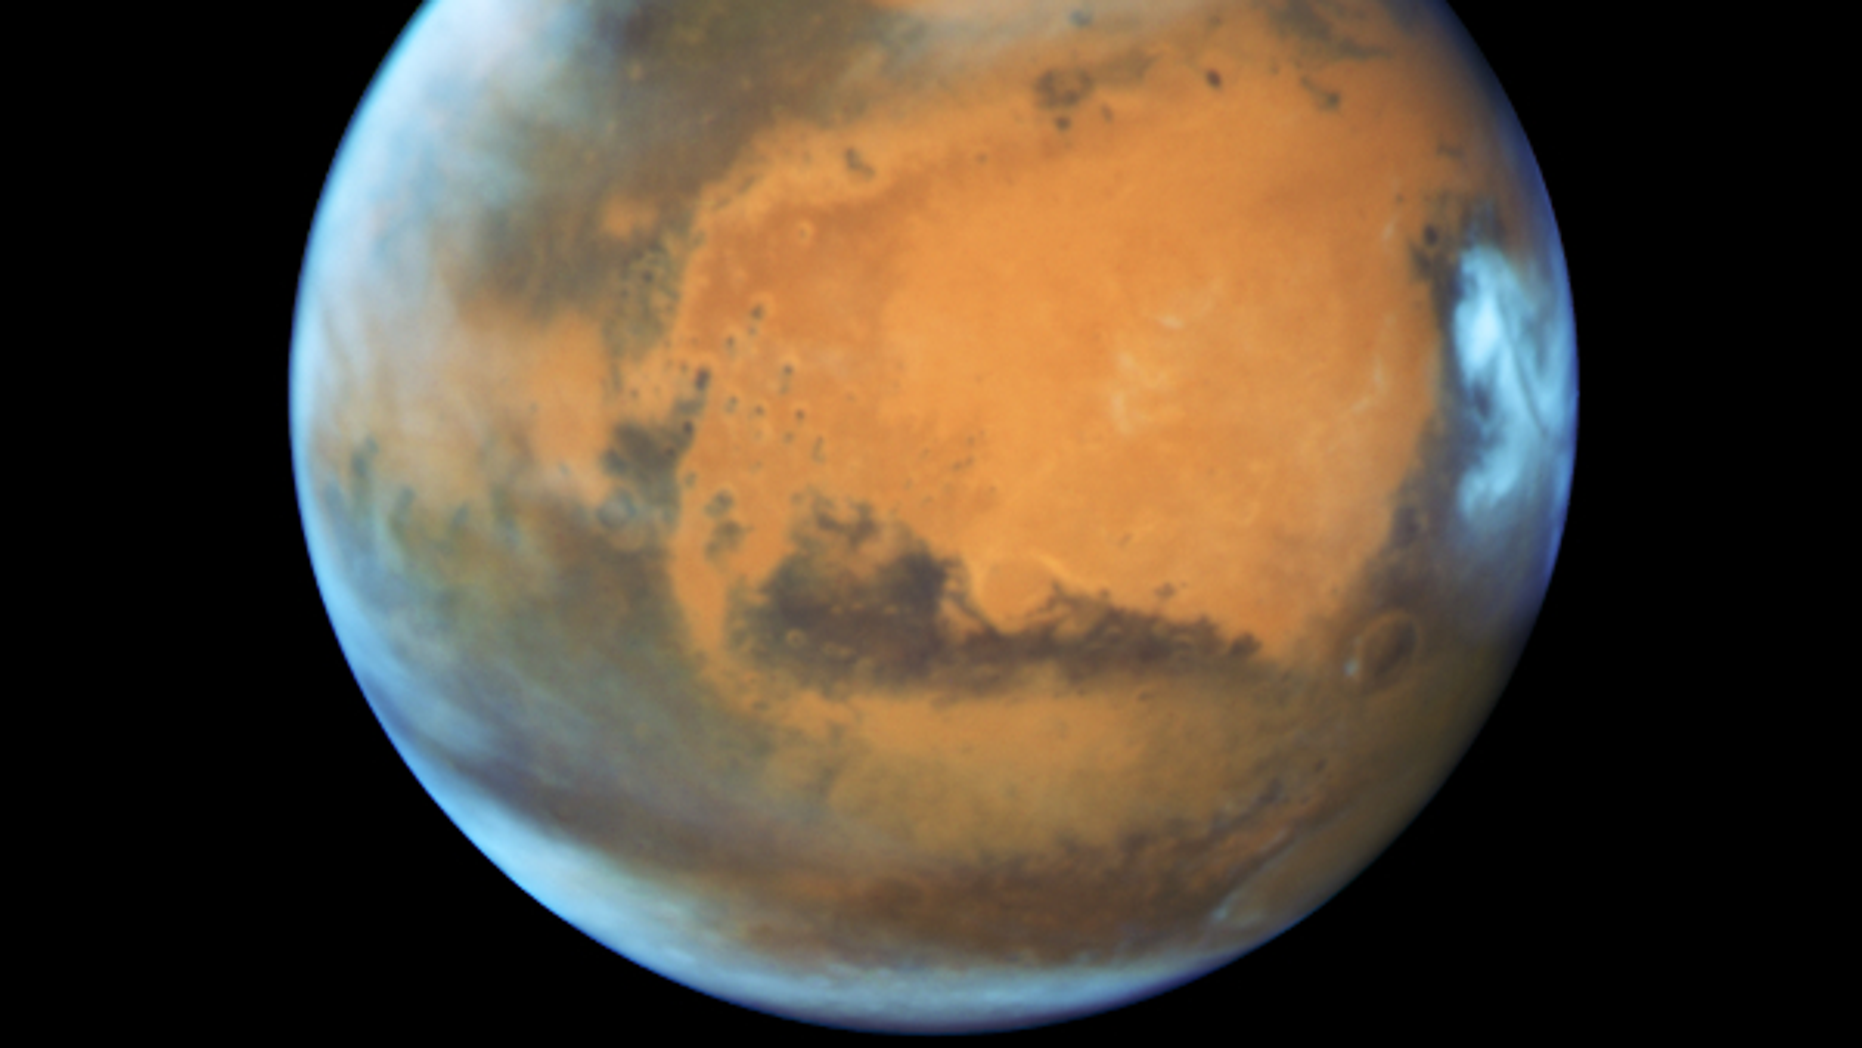 Mars in opposition 2016 (Image credit: NASA, ESA, the Hubble Heritage Team [STScI/AURA], J. Bell [ASU], and M. Wolff [Space Science Institute])